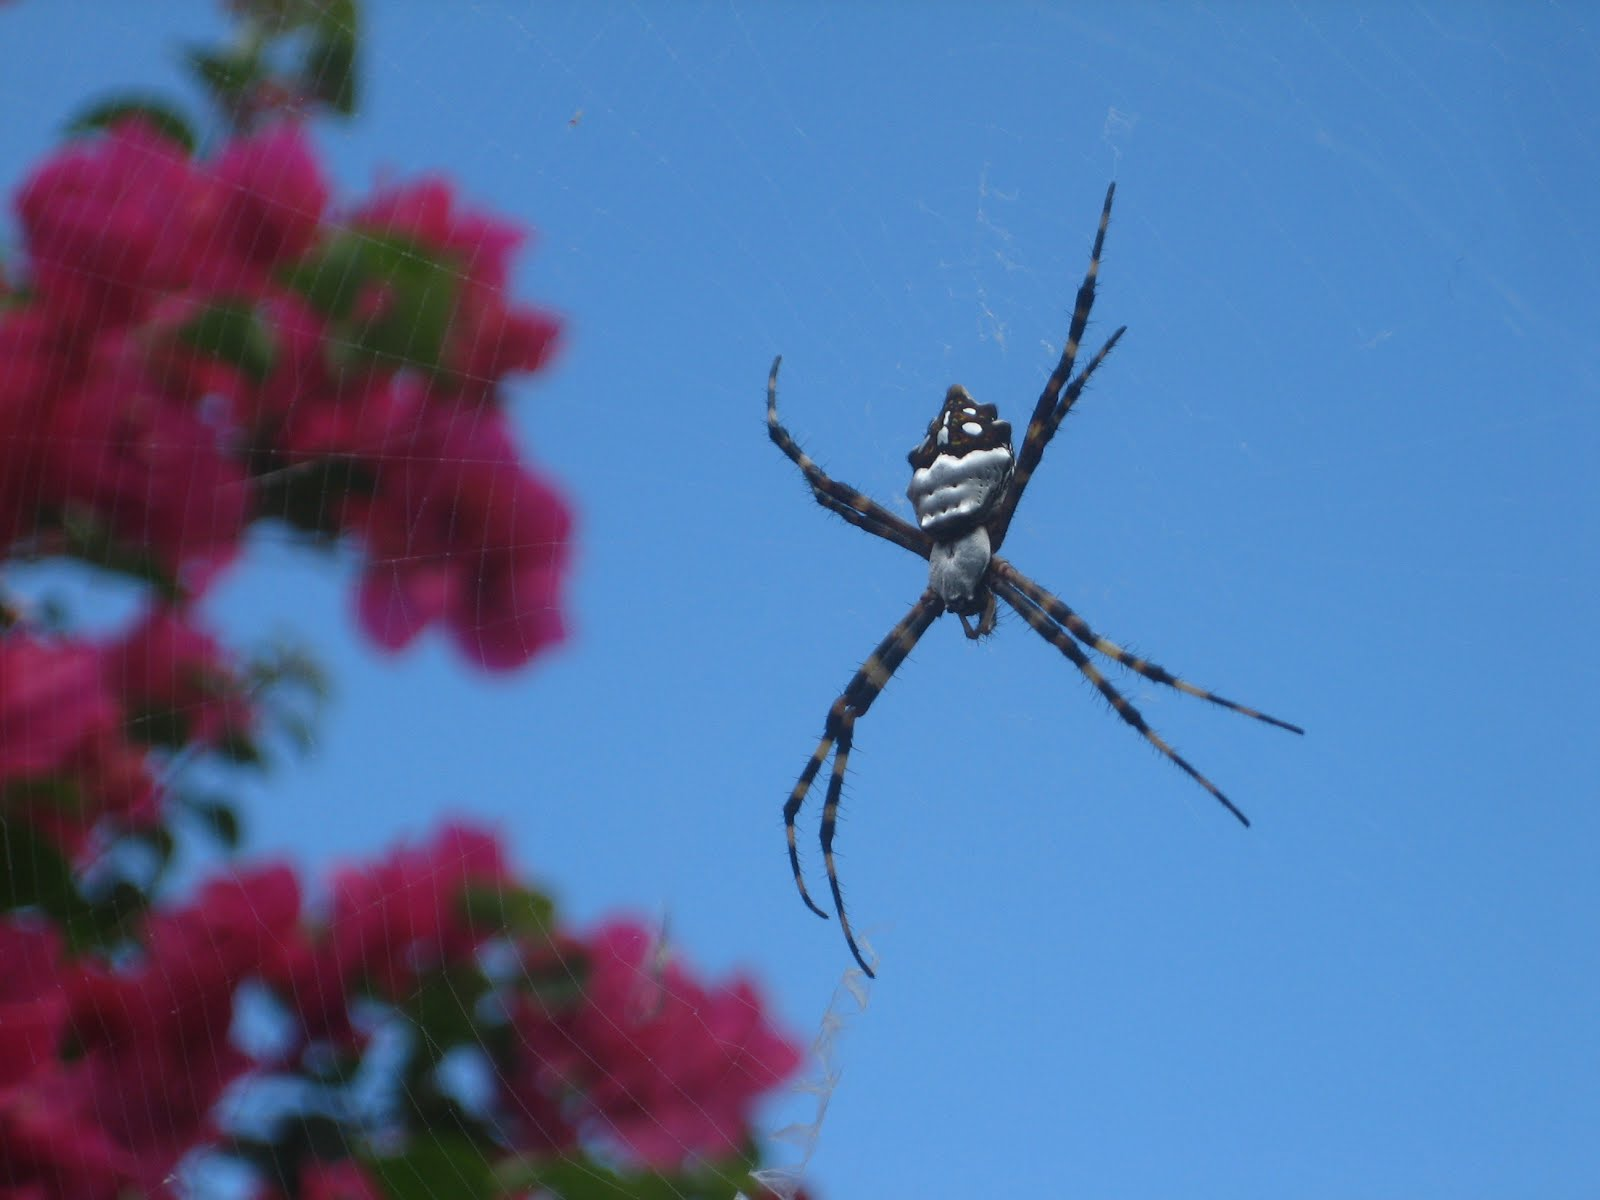 SPIDER BY THE BOUGANVILLEA SOUTH SIDE